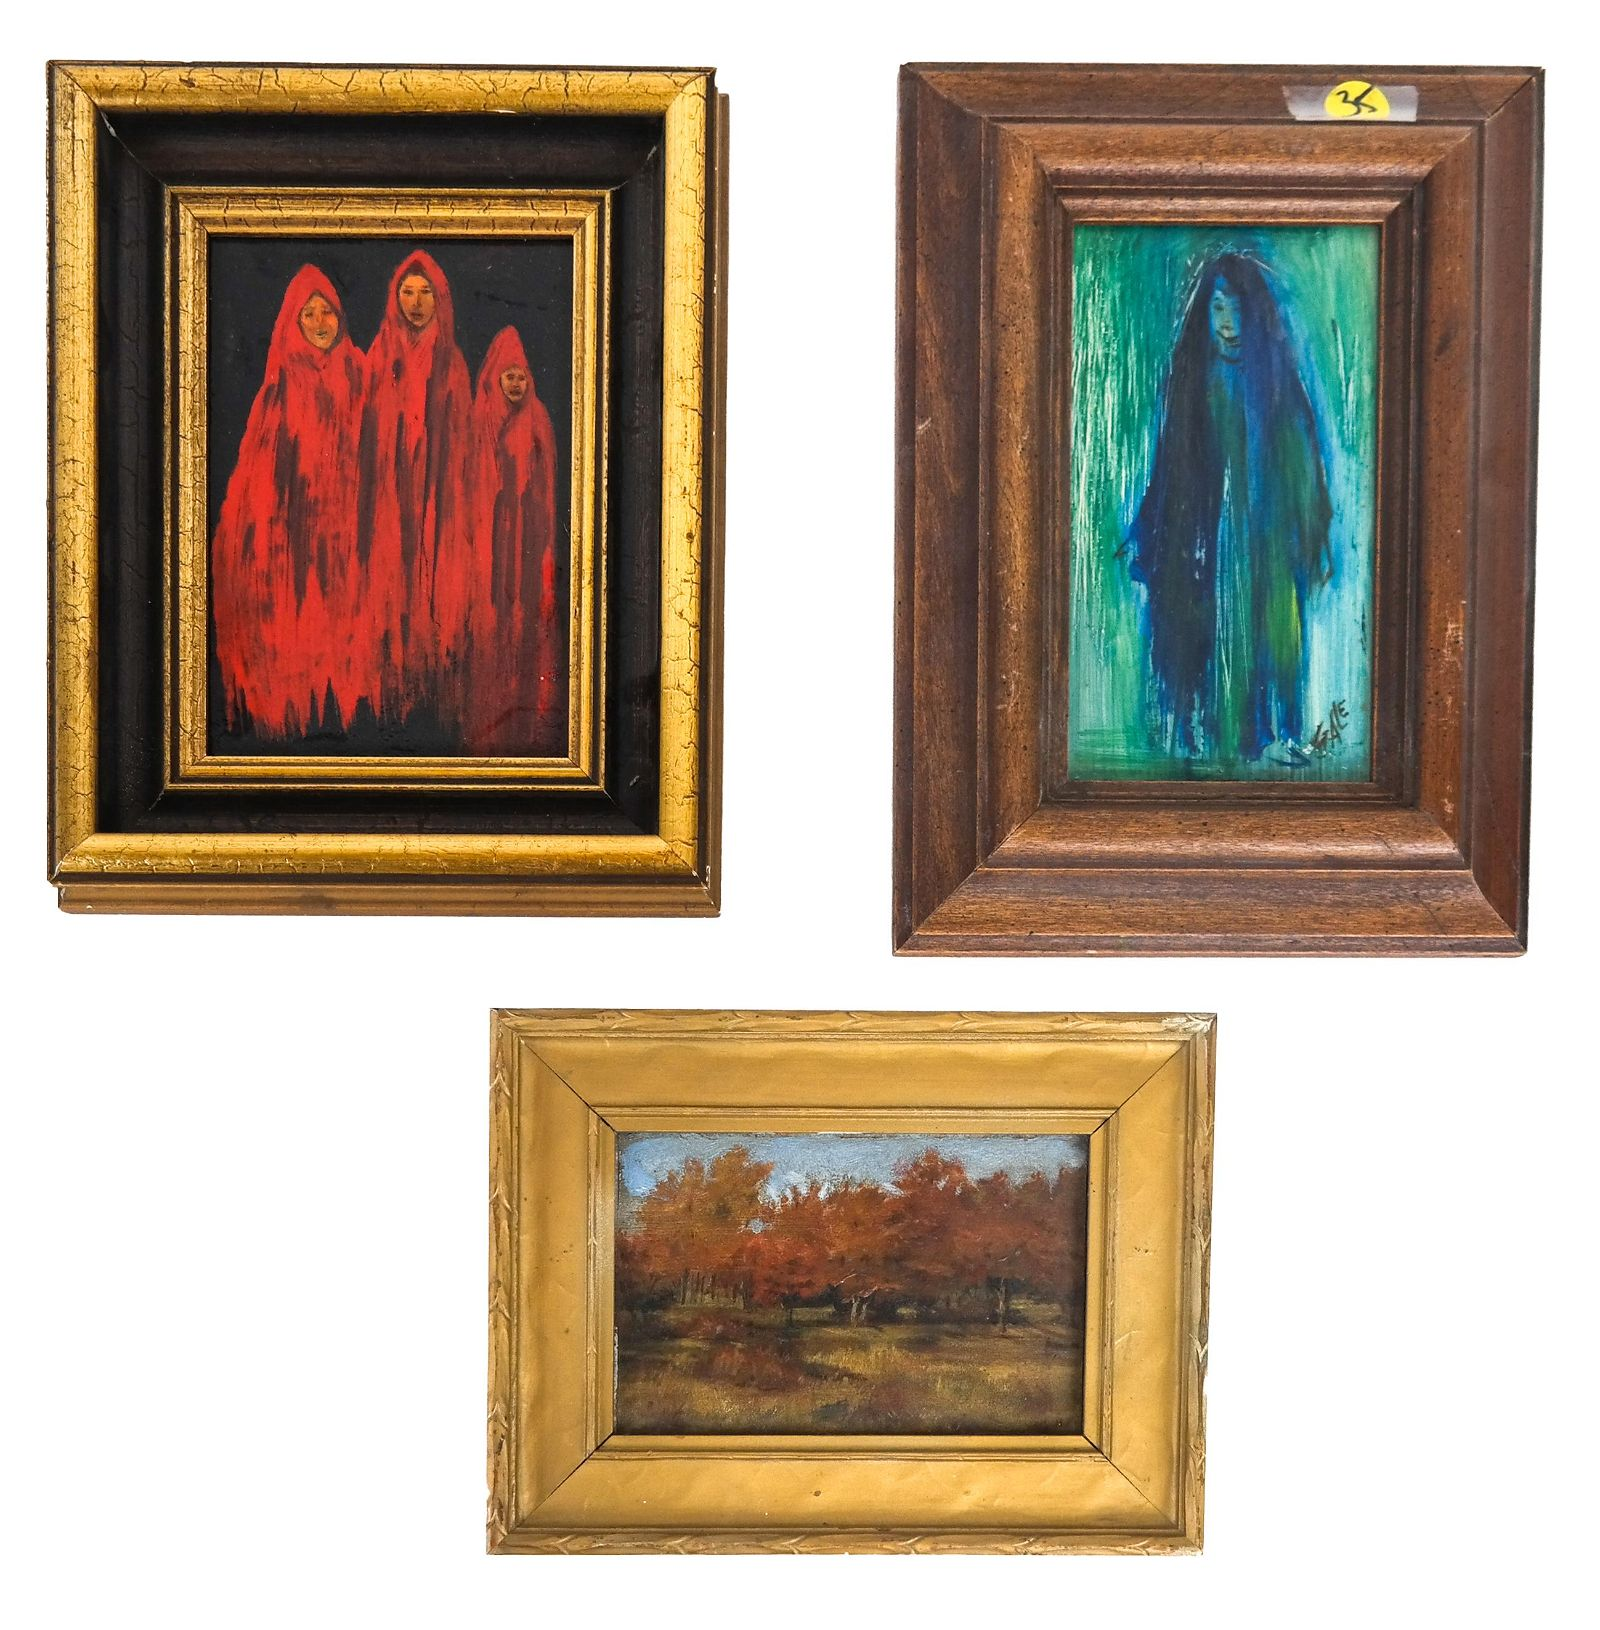 Group of 3 Small Framed Oils on Canvas